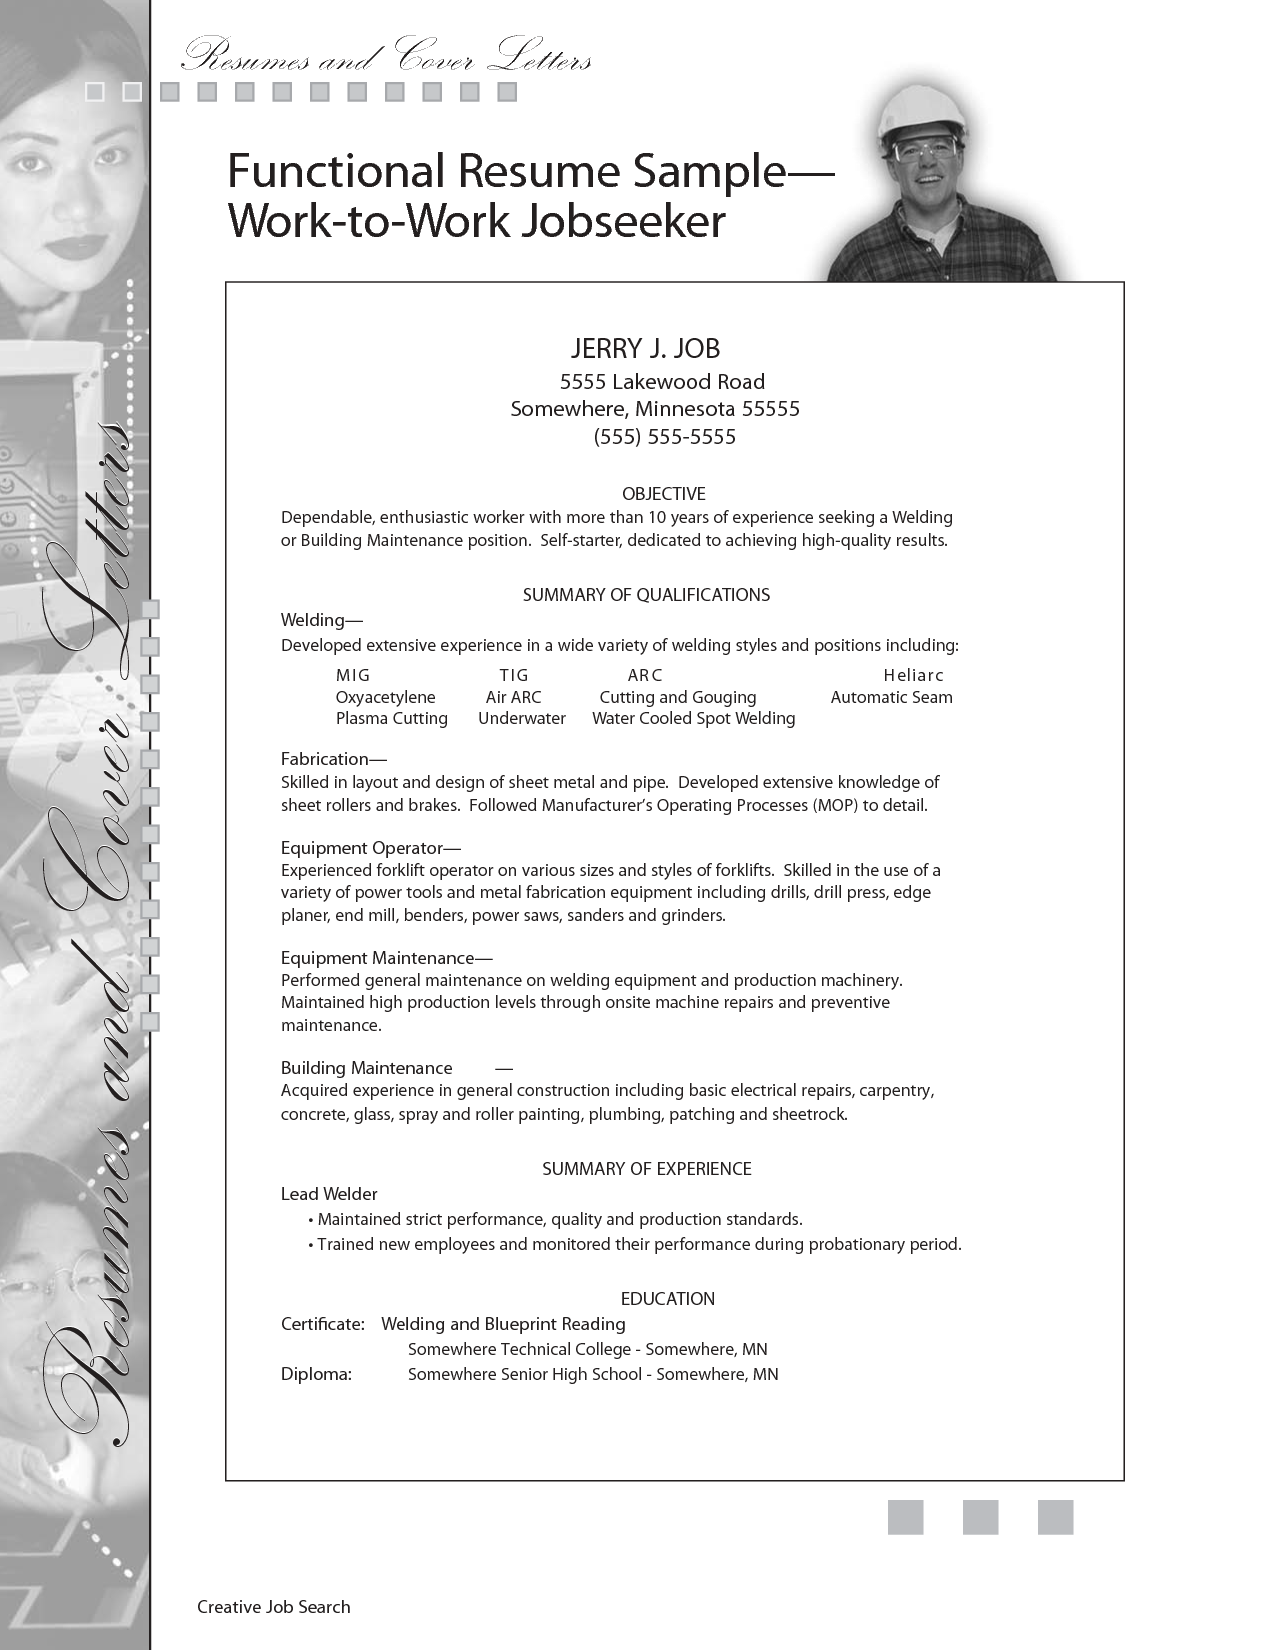 Building Maintenance Engineer Resume Sample httpwww